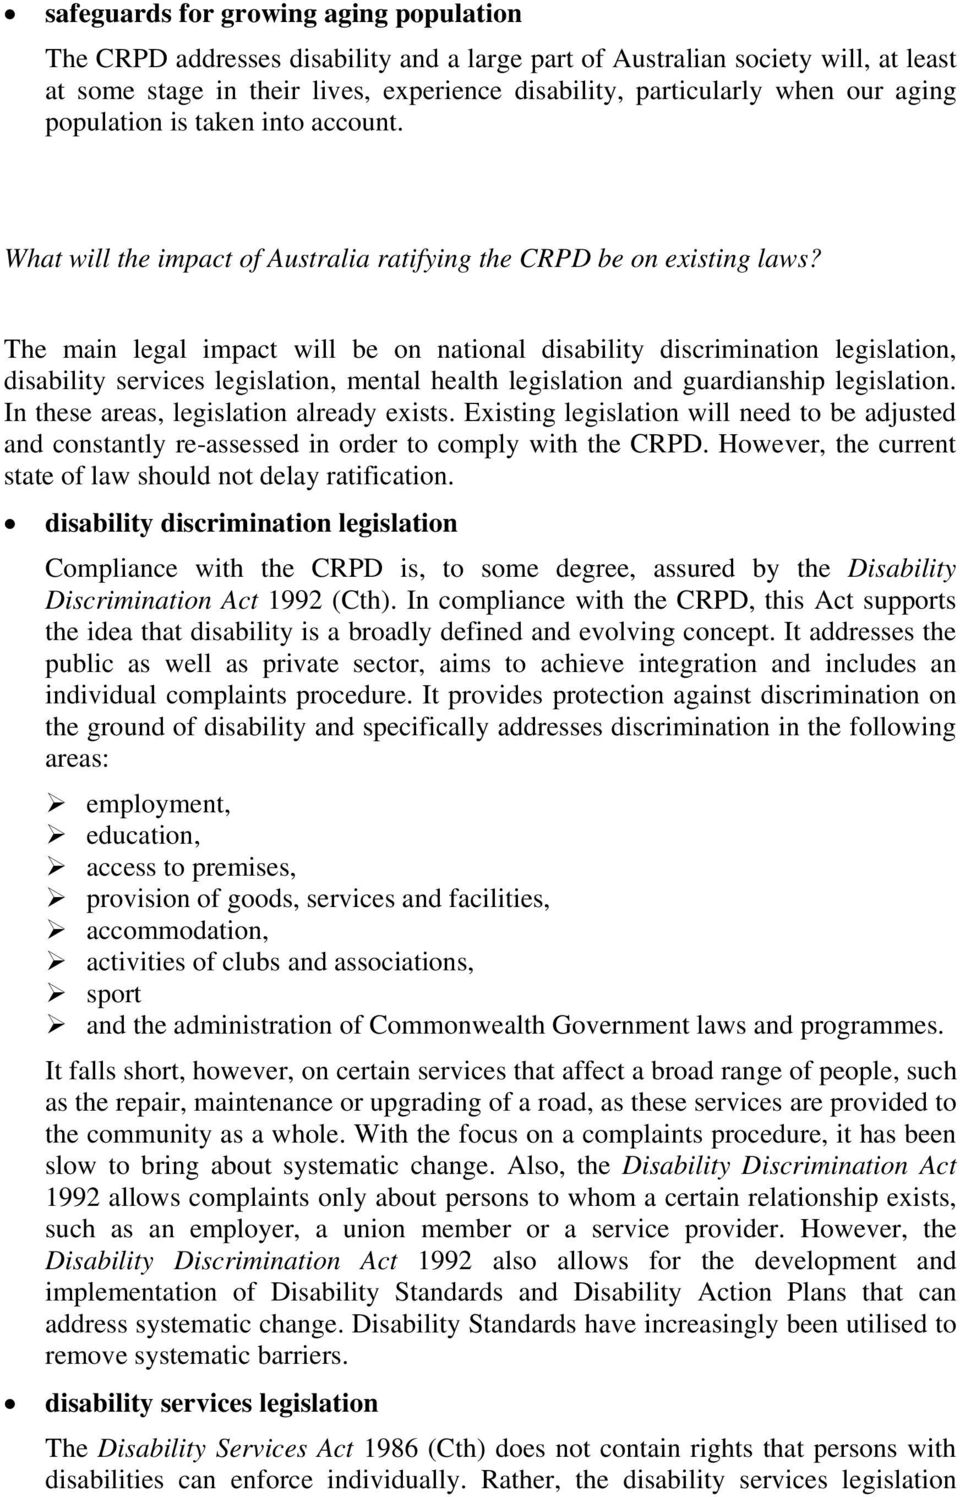 The main legal impact will be on national disability discrimination legislation, disability services legislation, mental health legislation and guardianship legislation.